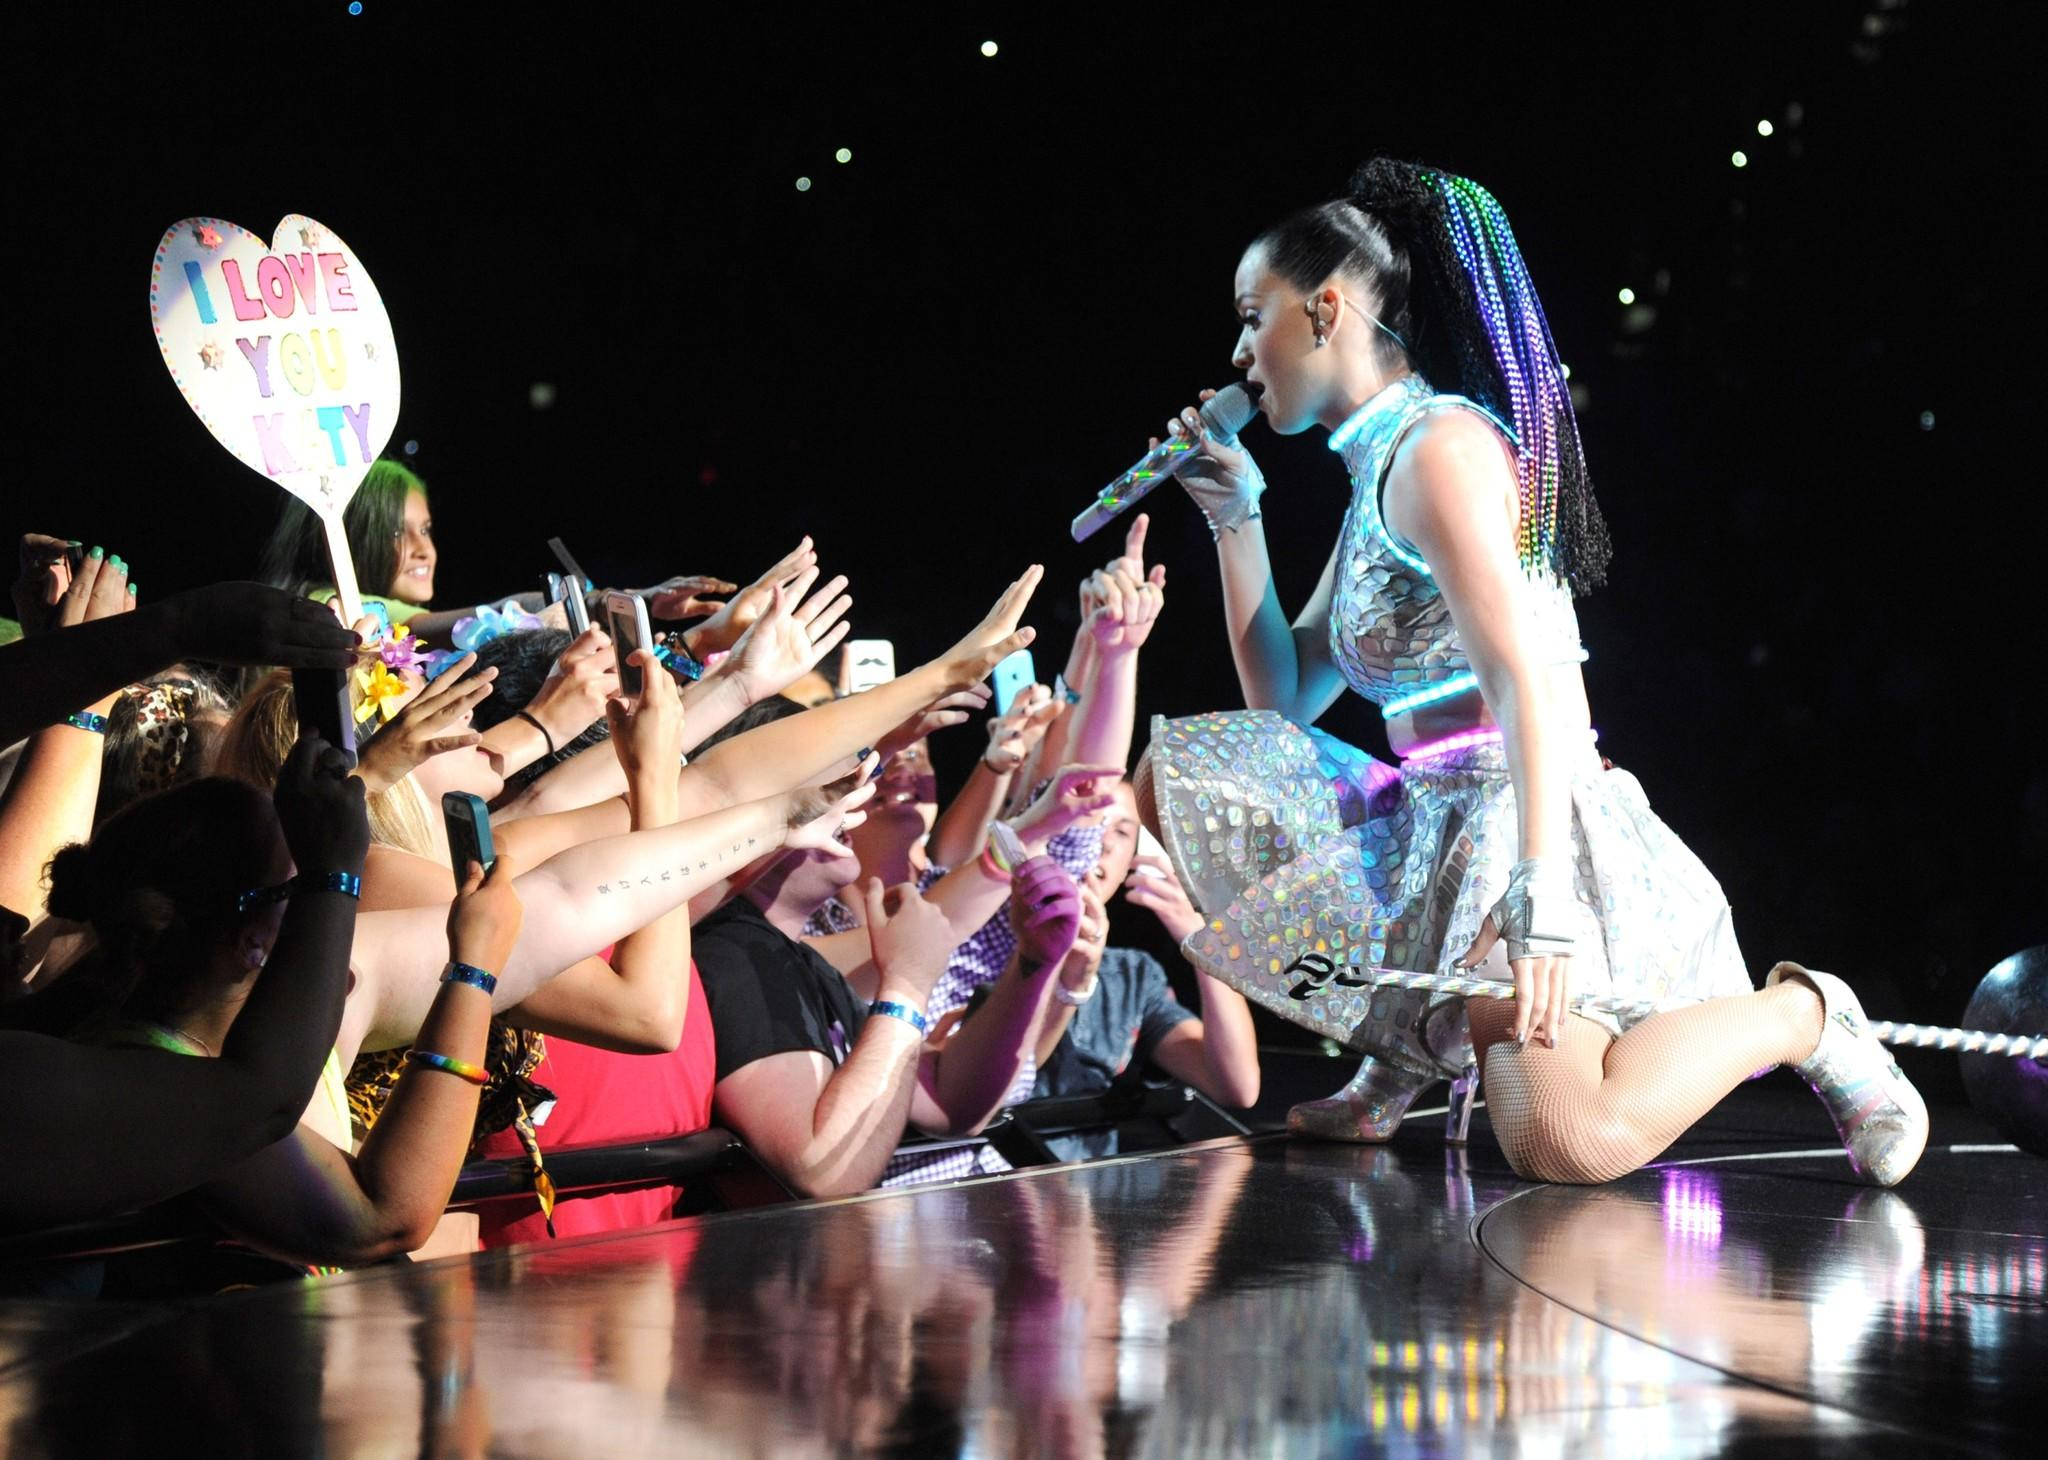 Katy Perry performs onstage at PNC Arena on June 22 in Raleigh, N.C.